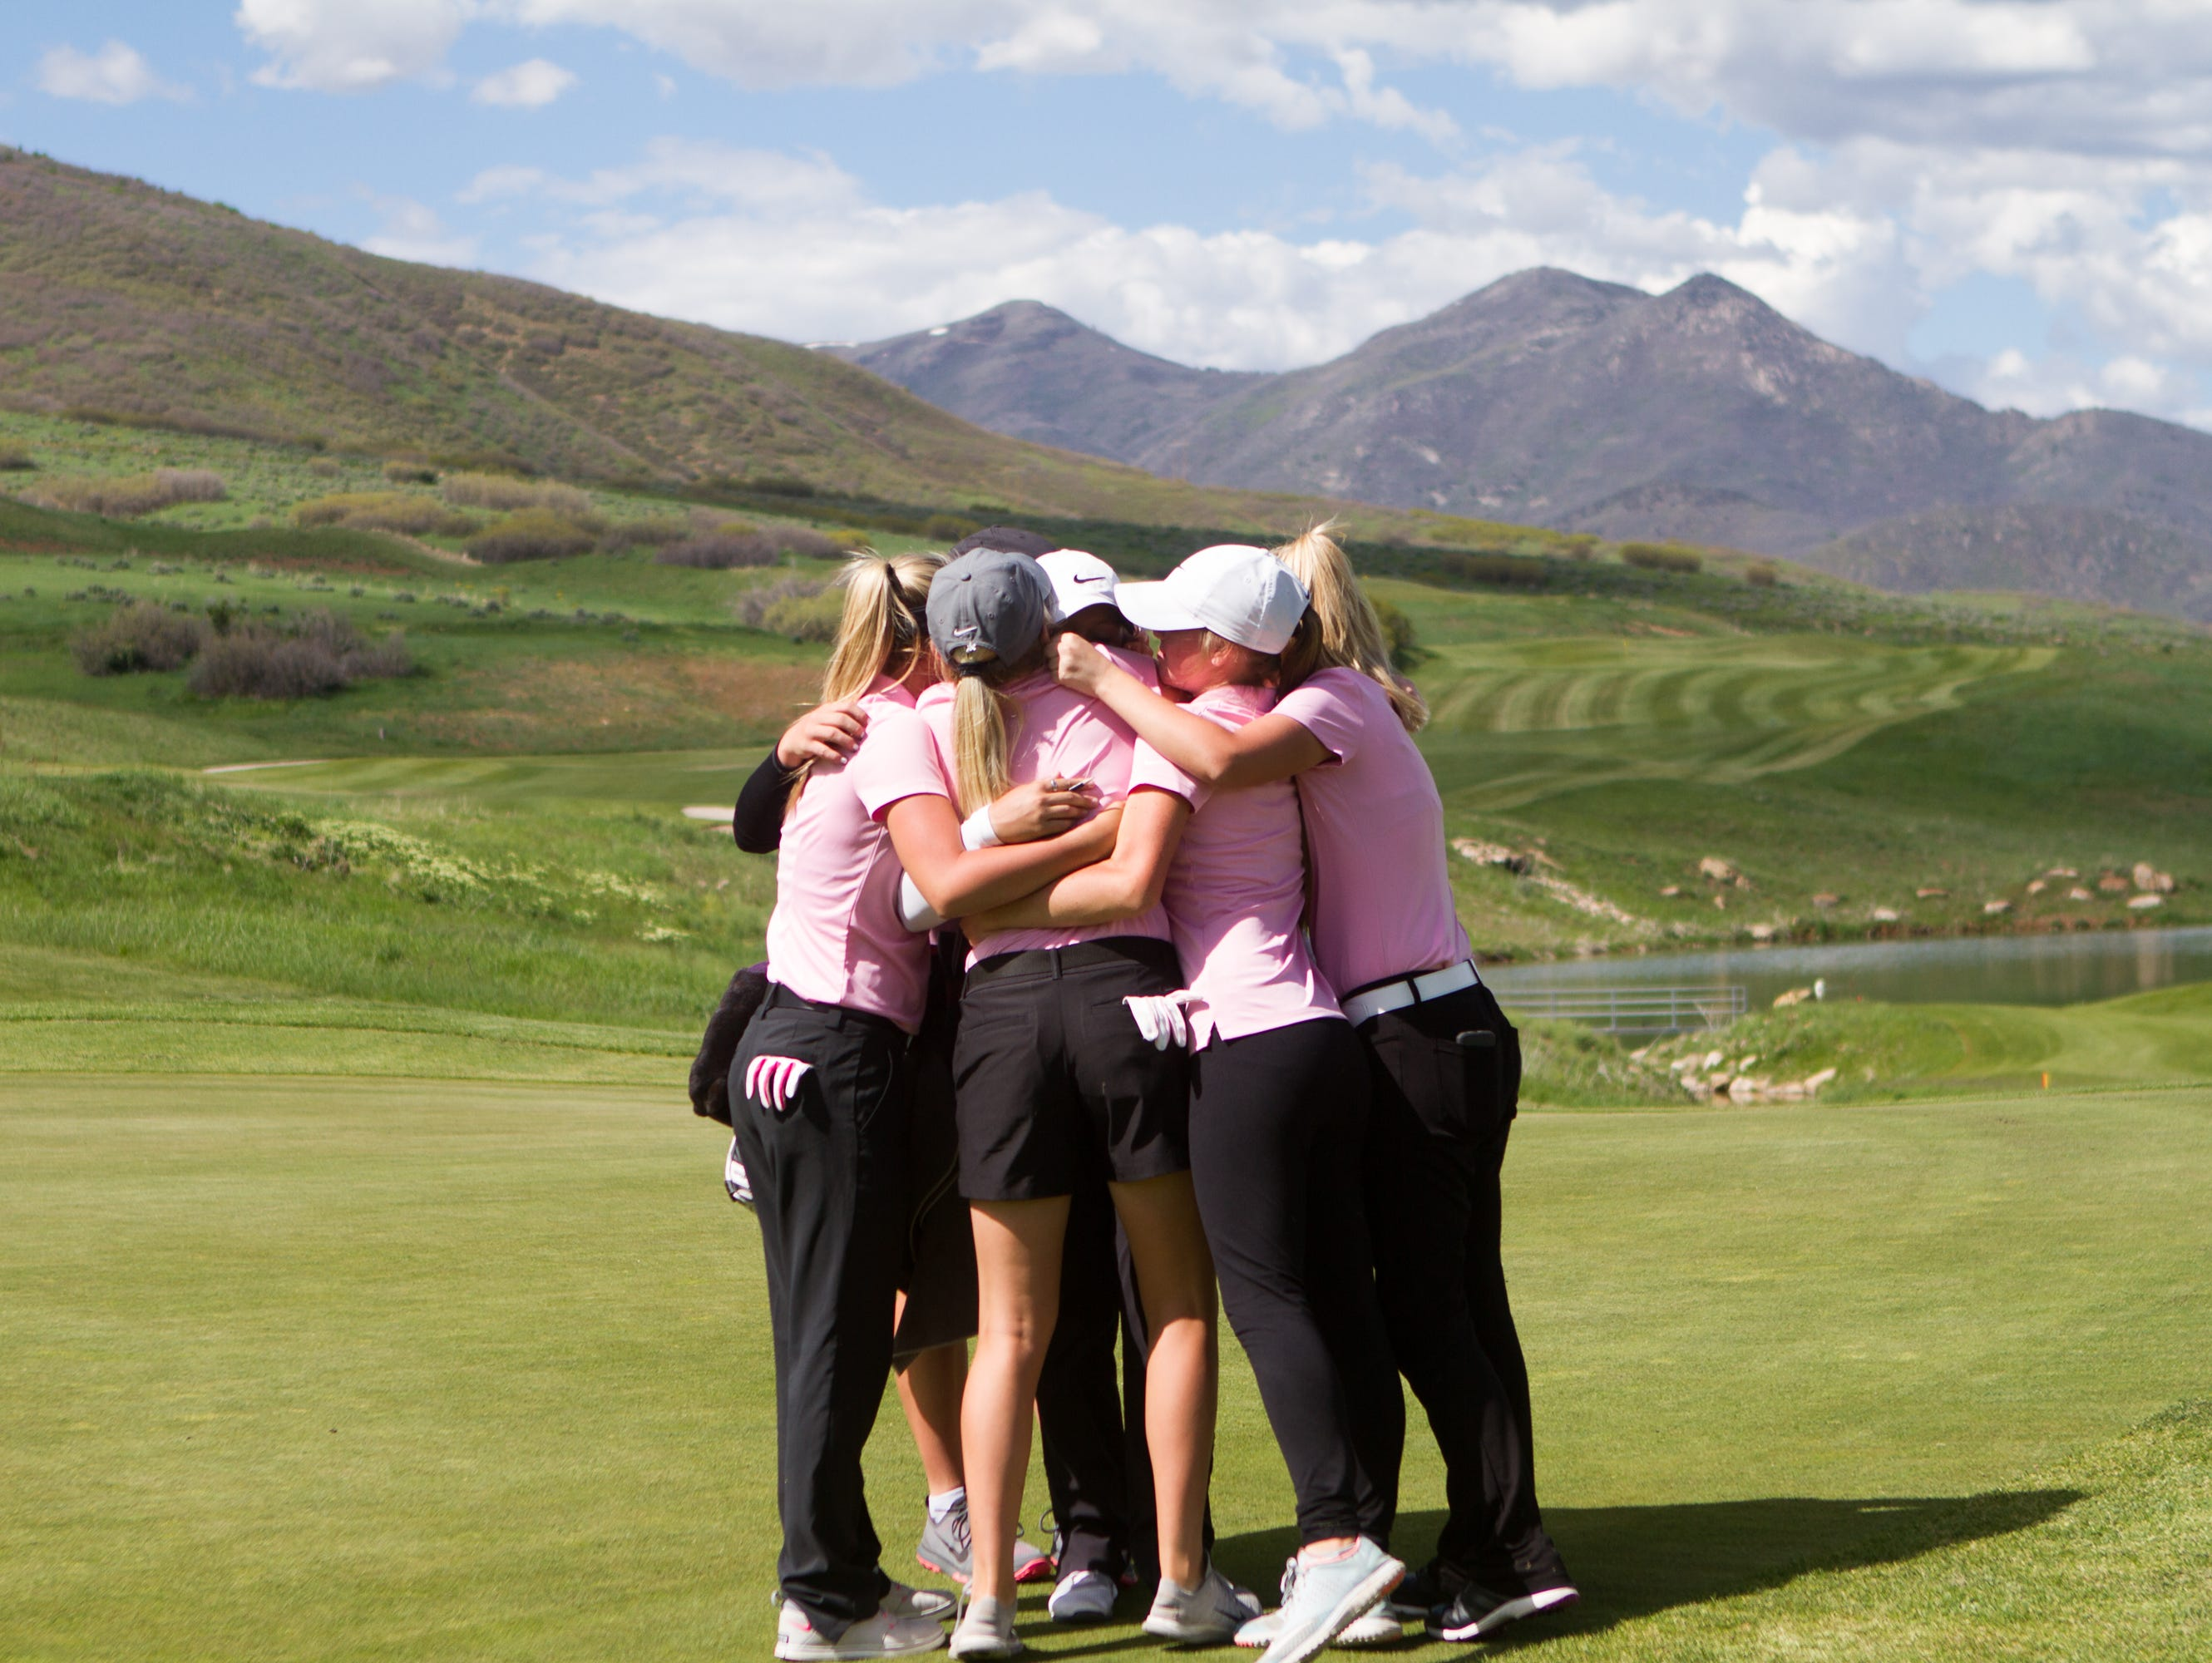 Pine View players celebrate after completing one of the toughest courses in the state at Soldier Hollow on Wednesday.